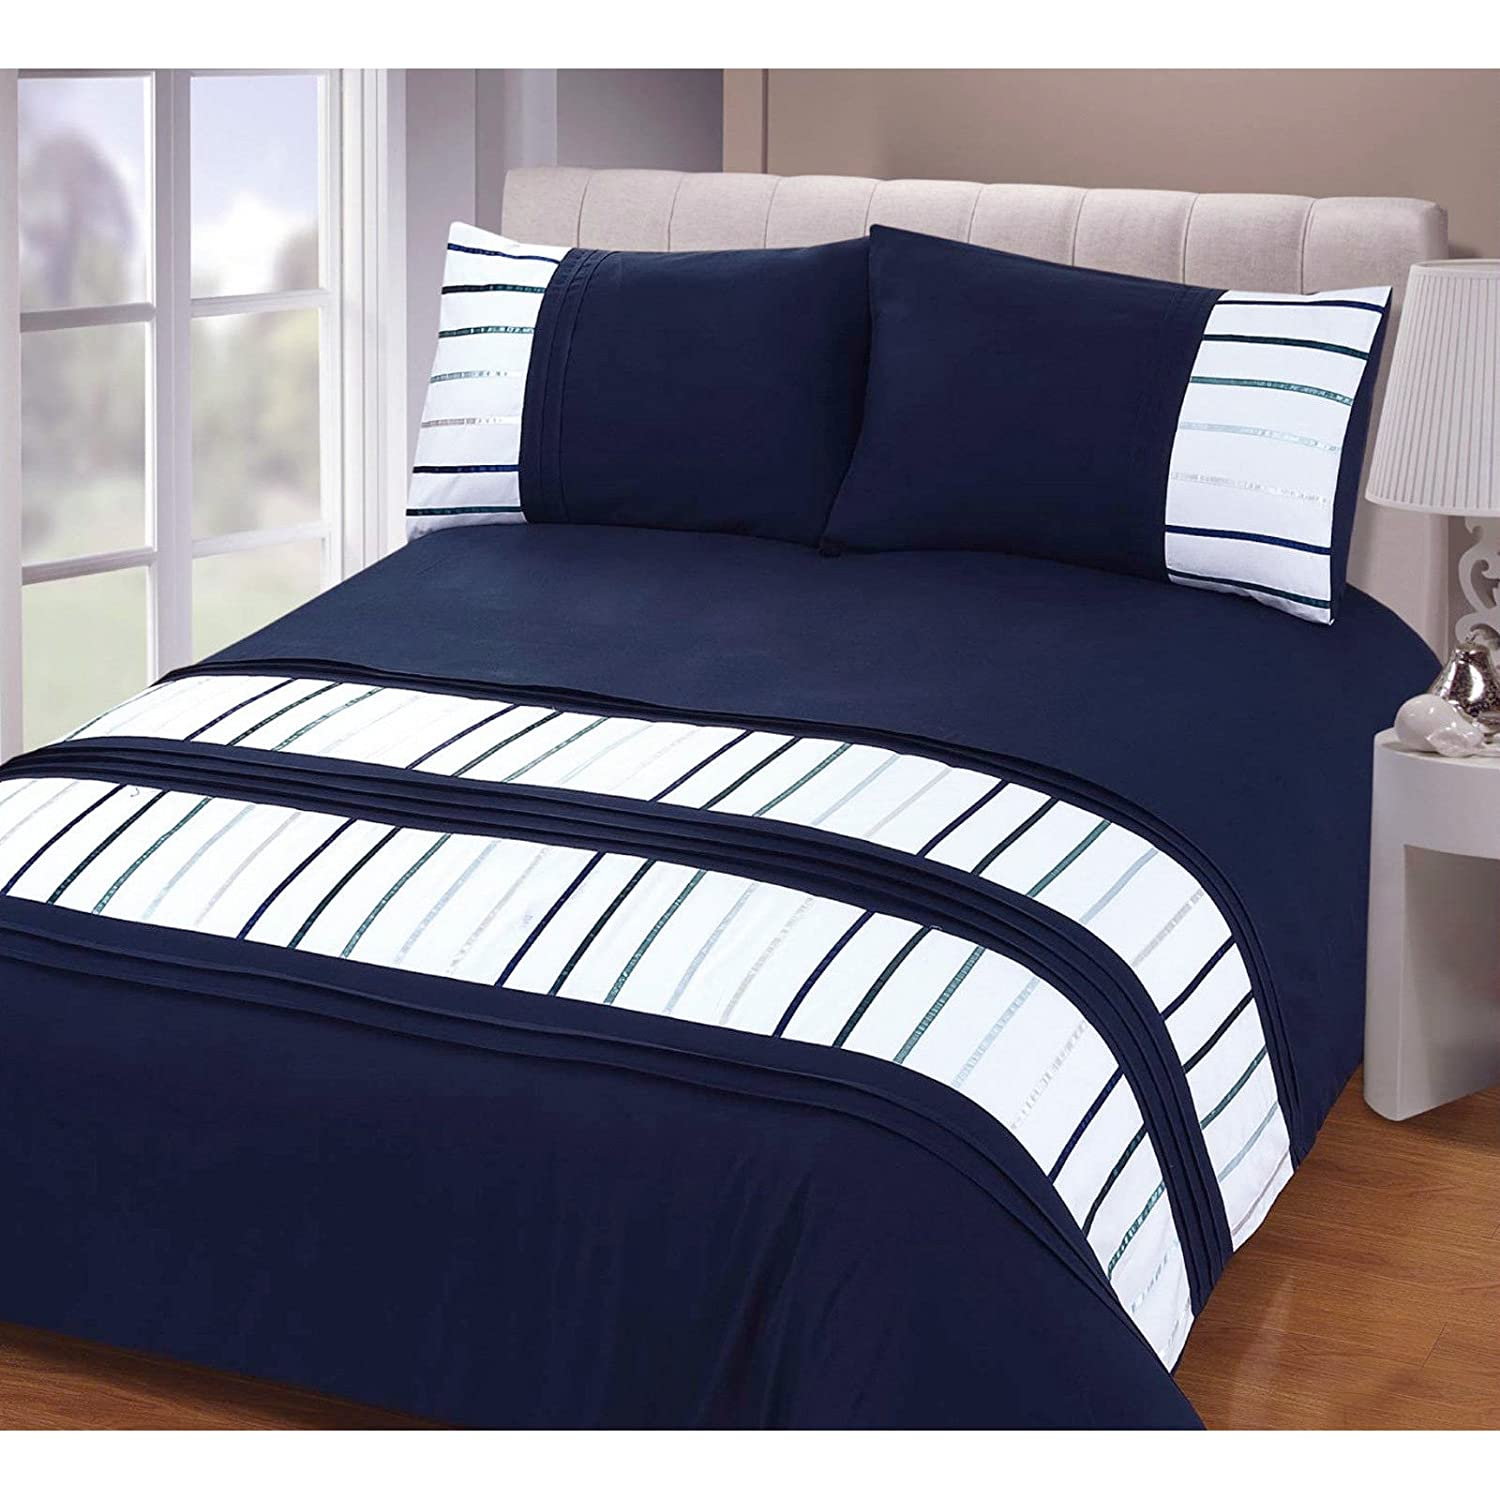 Just Contempo Stripe Duvet Cover Set Double Blue Amazon